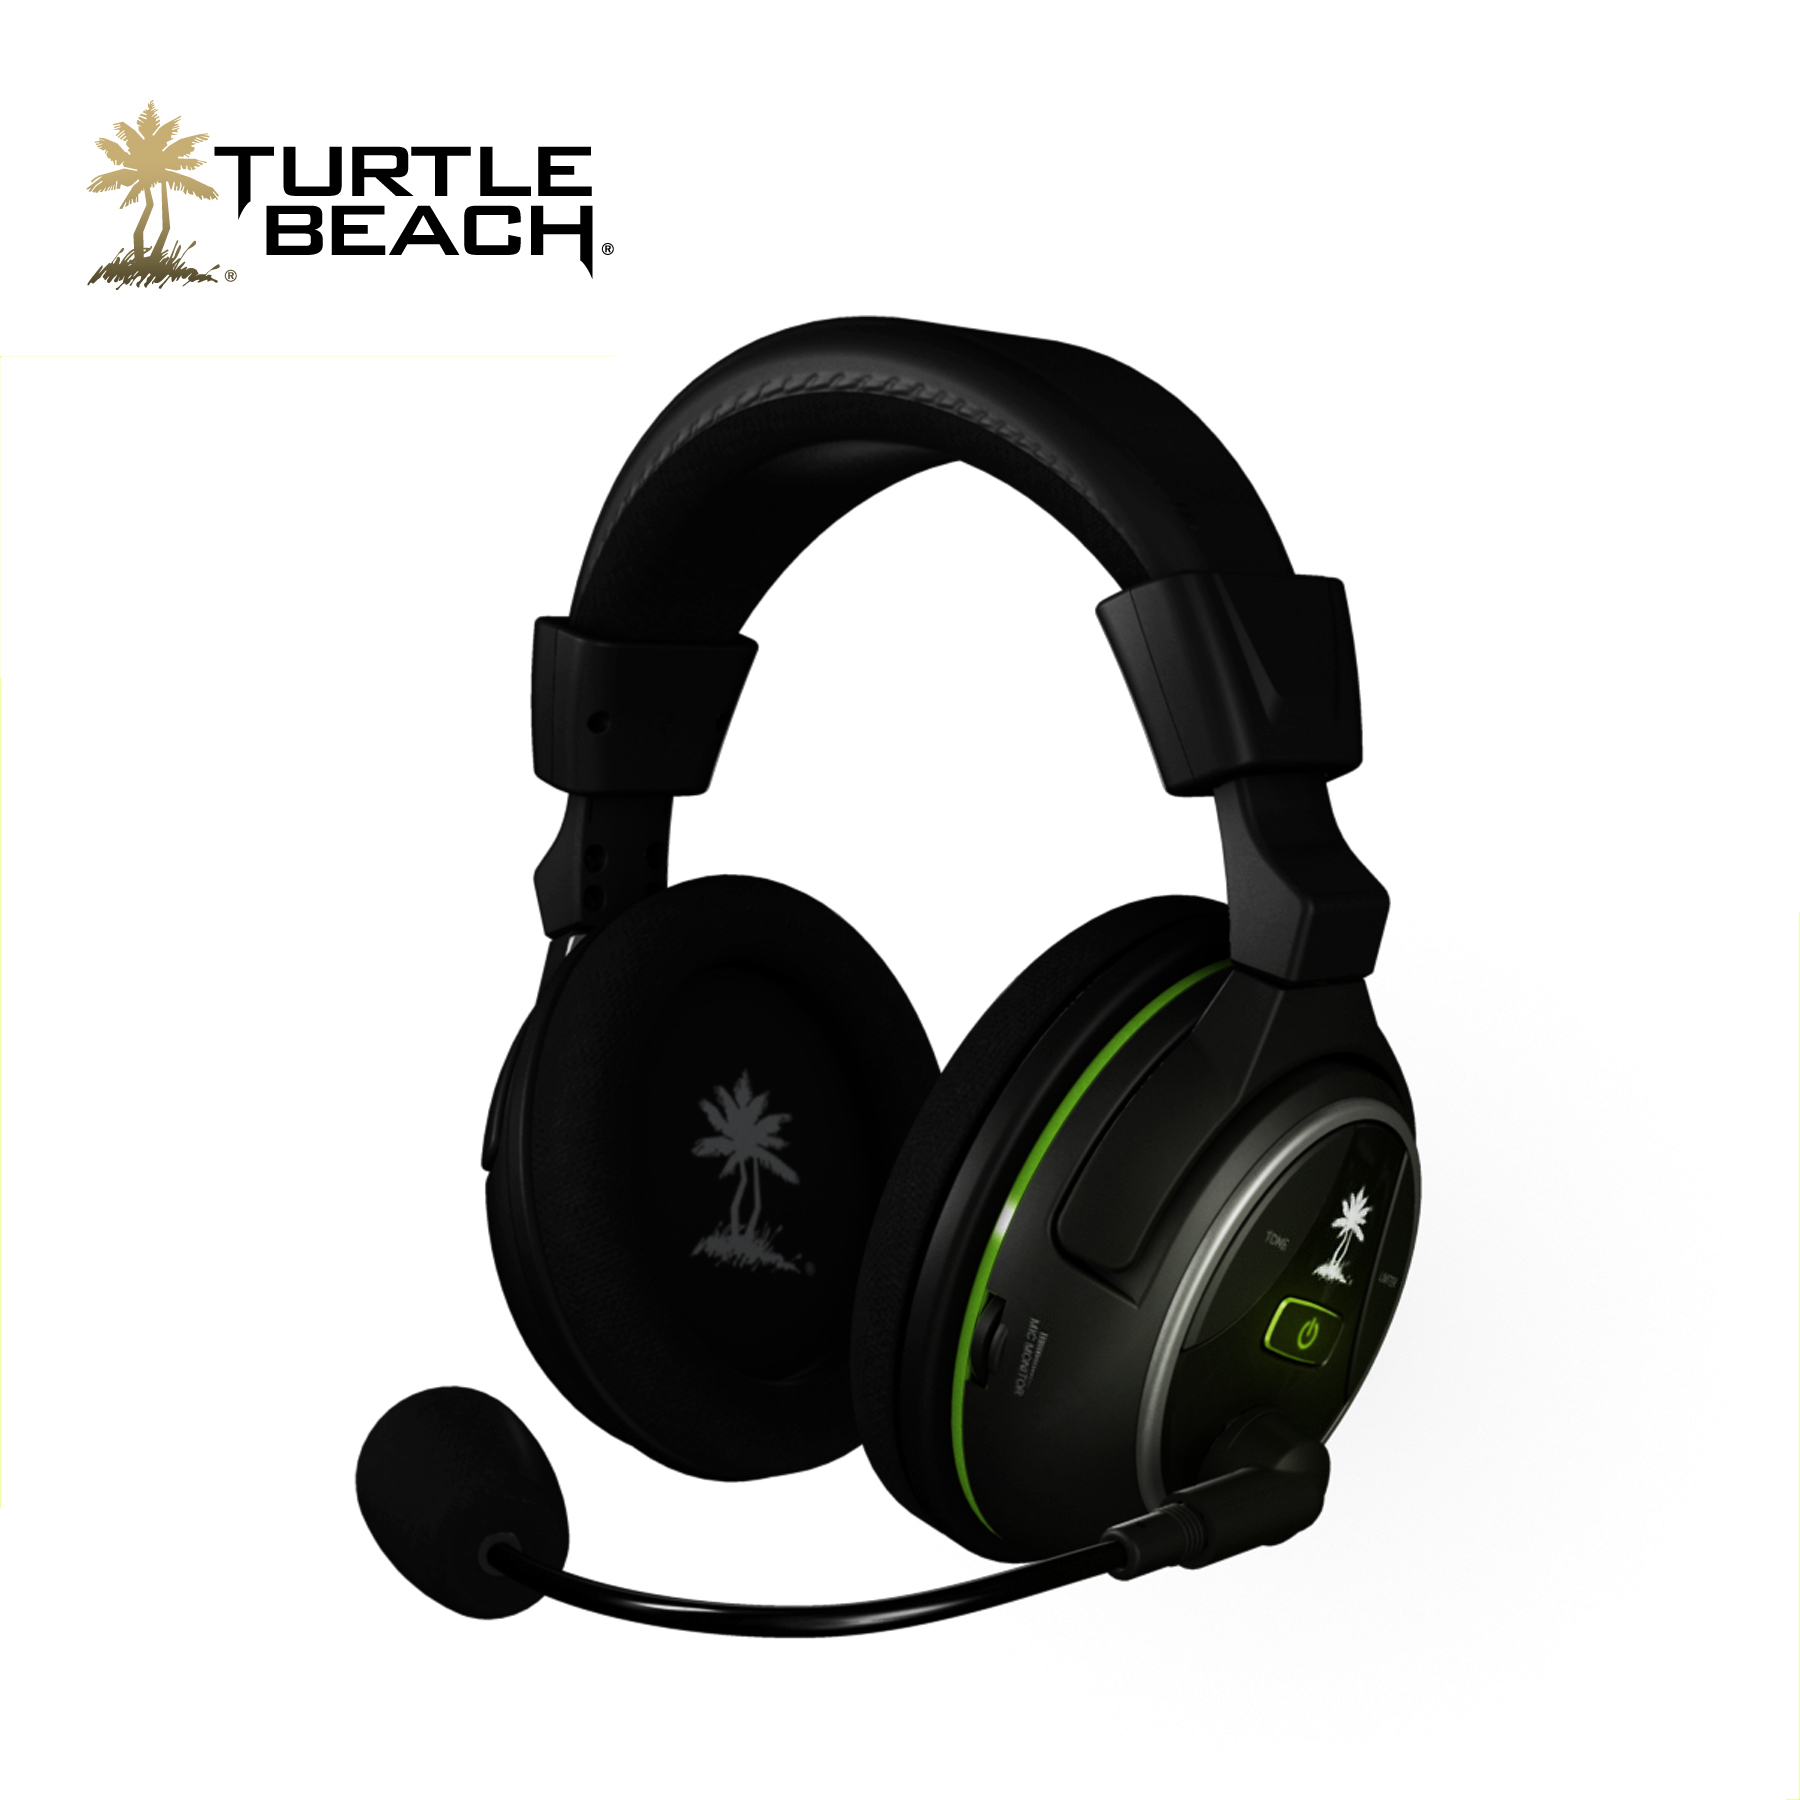 casque turtle beach ps3. Black Bedroom Furniture Sets. Home Design Ideas